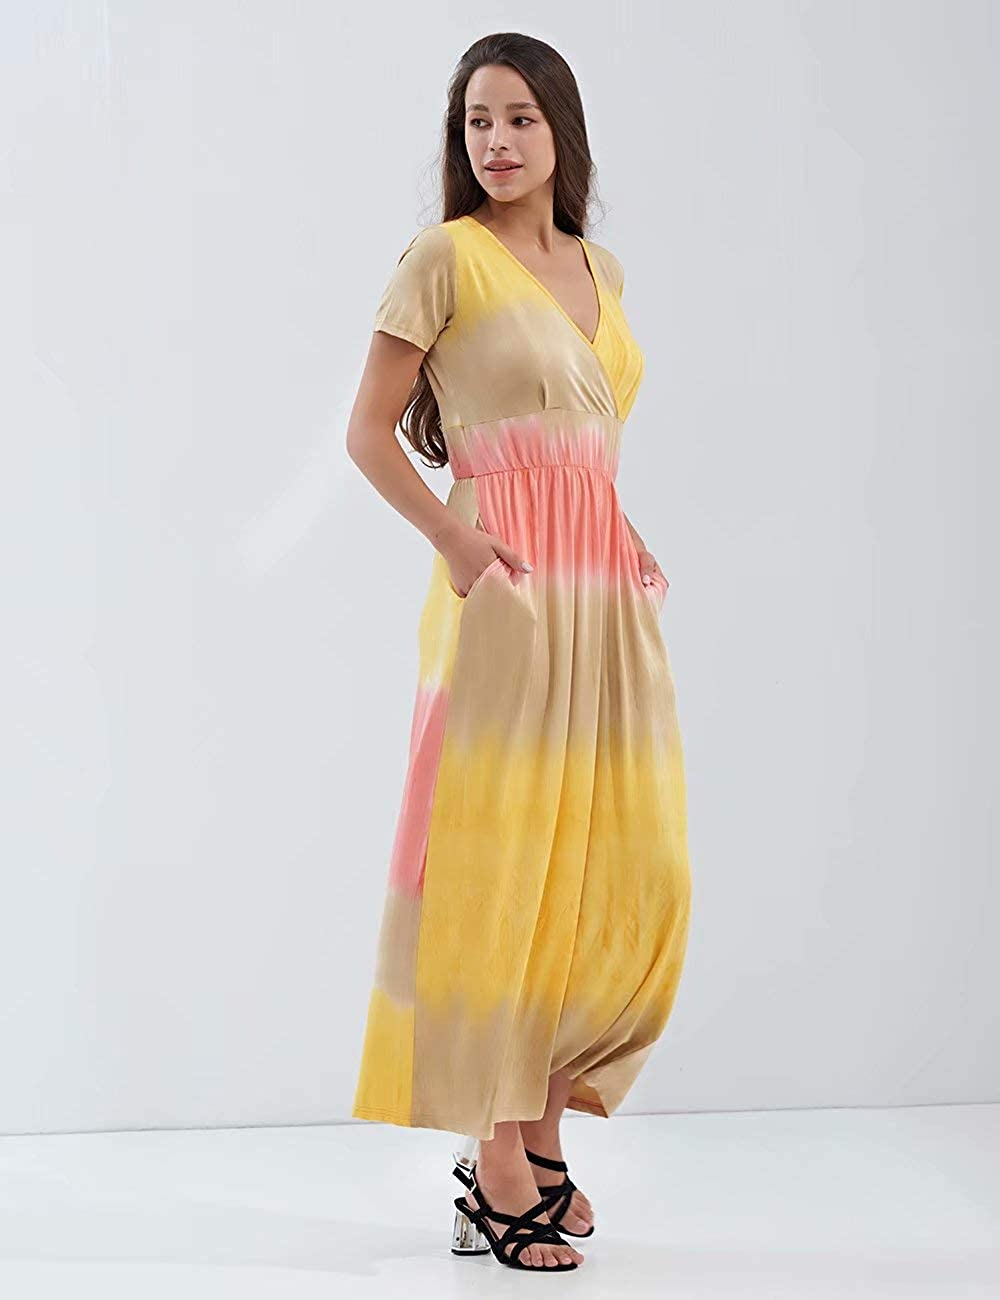 KLY Womens Tie Dye Short Sleee Maxi Dress with Pockets V Neck Wrap Long Dresses